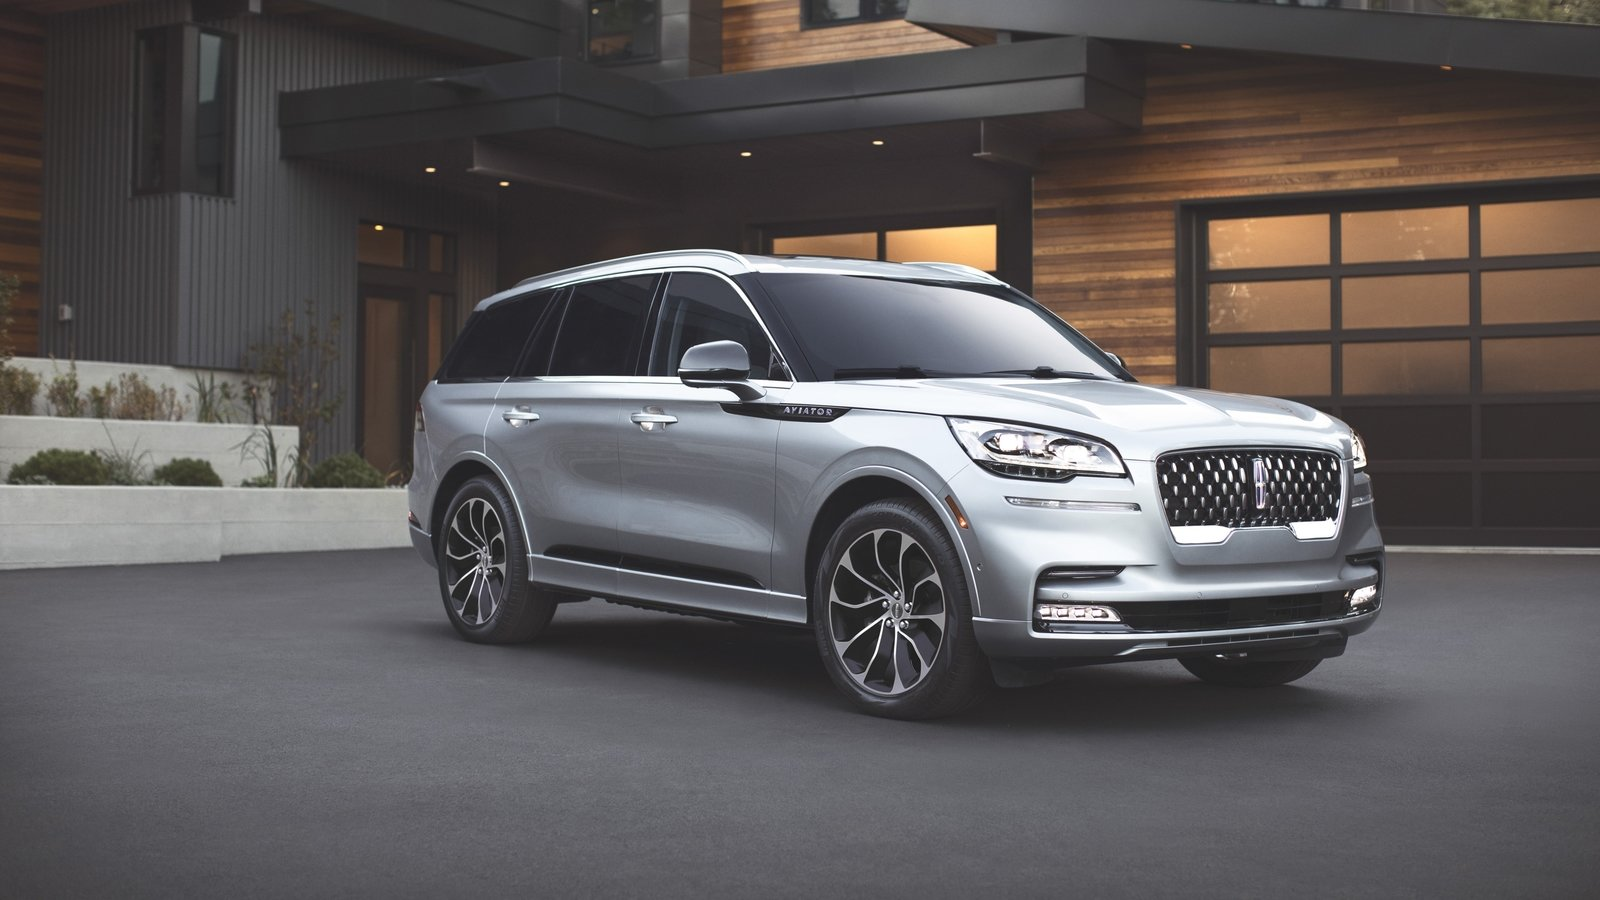 Lincoln Suv 2018 >> The 2020 Lincoln Aviator, Lincoln's First Hybrid SUV, Is Impressively Powerful | Top Speed